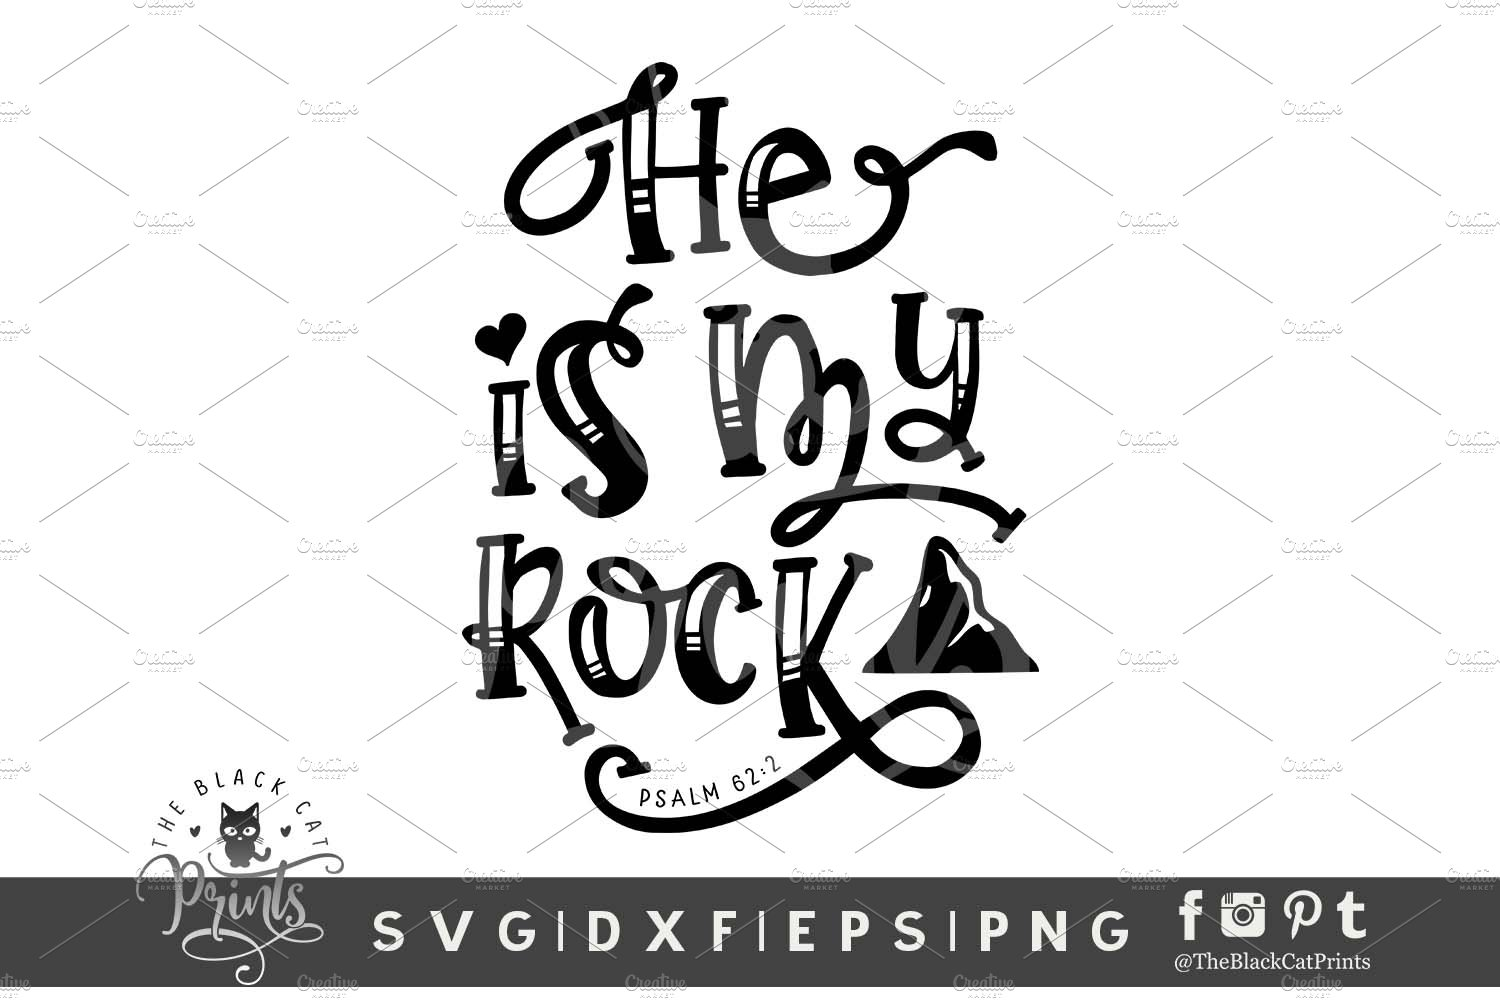 He Is My Rock Svg Dxf Eps Png Pre Designed Photoshop Graphics Creative Market He also has a premium version, located at wpsvg.com, which allows you to. he is my rock svg dxf eps png